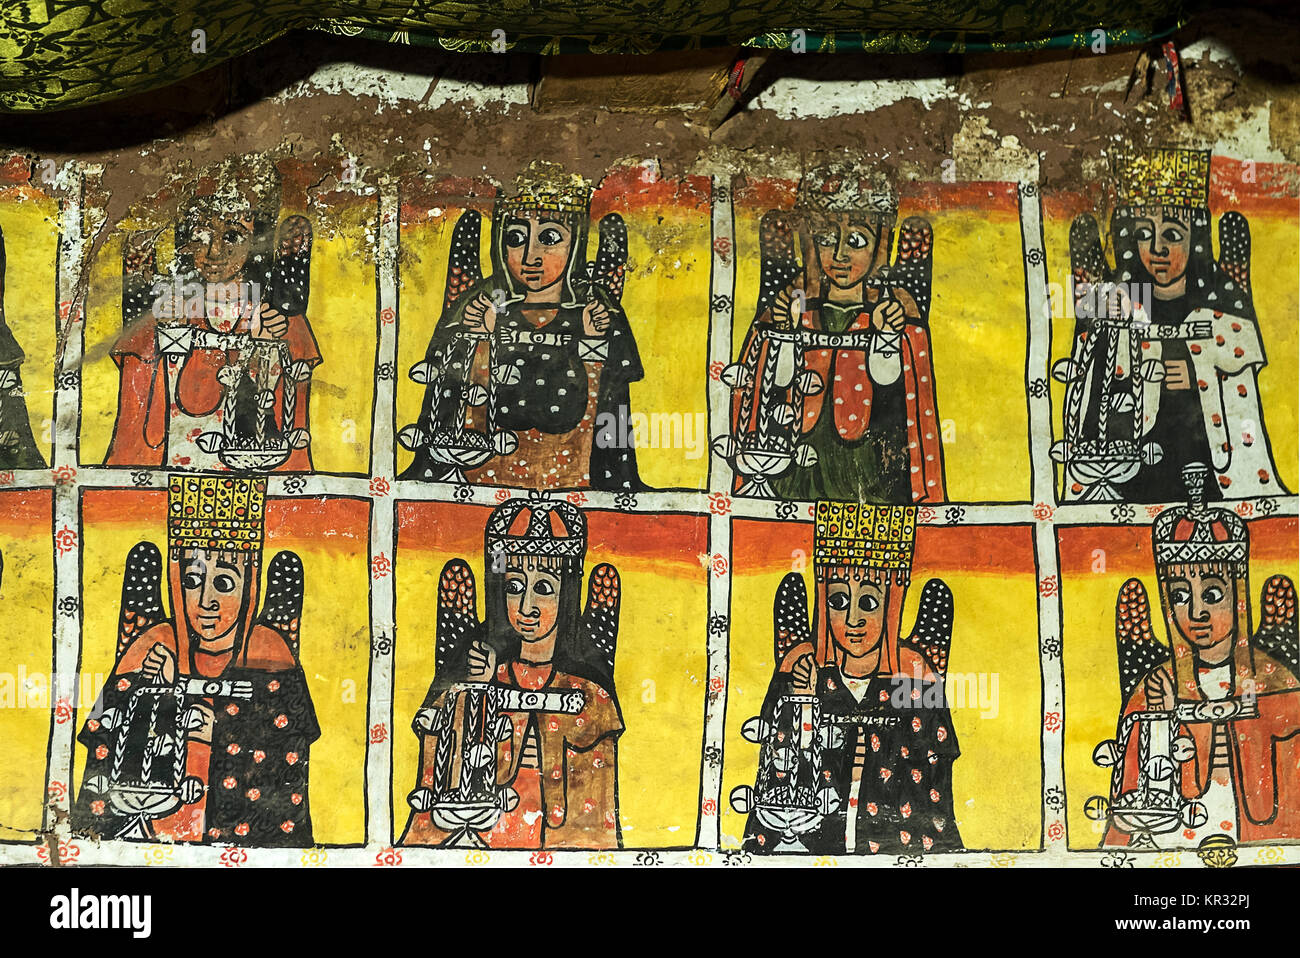 Eight of the twenty-four elders of the Apocalypse, fresco in the interior of the rock church Maryam Papaseyti, Gheralta, - Stock Image